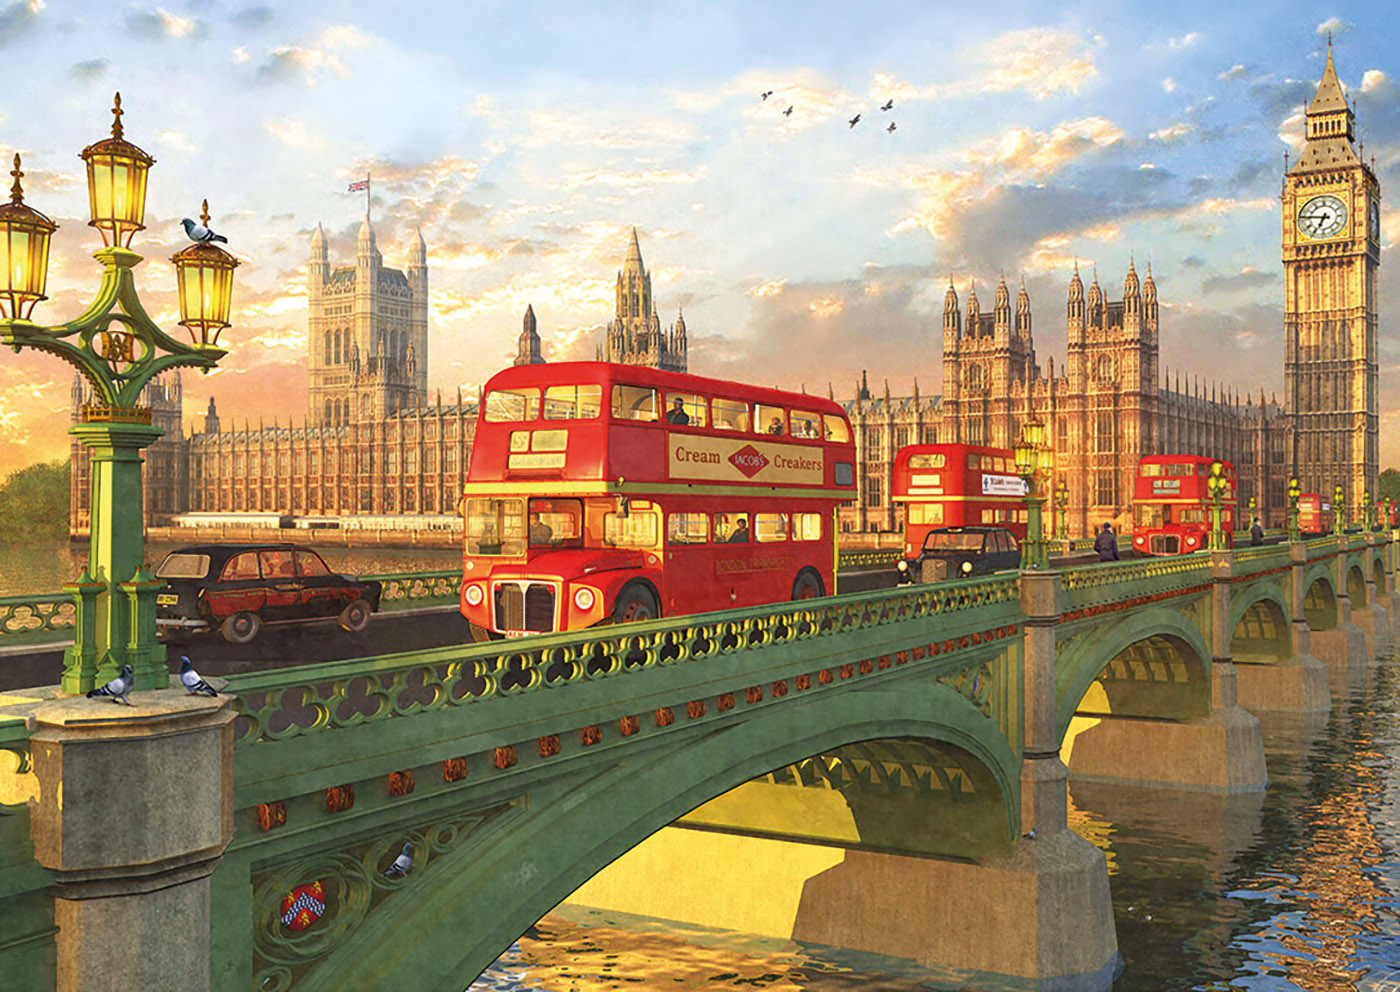 Jigsaw puzzle London's Westminster Bridge 2000 Pieces Spain Imported Puzzle Renoir-in Puzzles from Toys & Hobbies    1